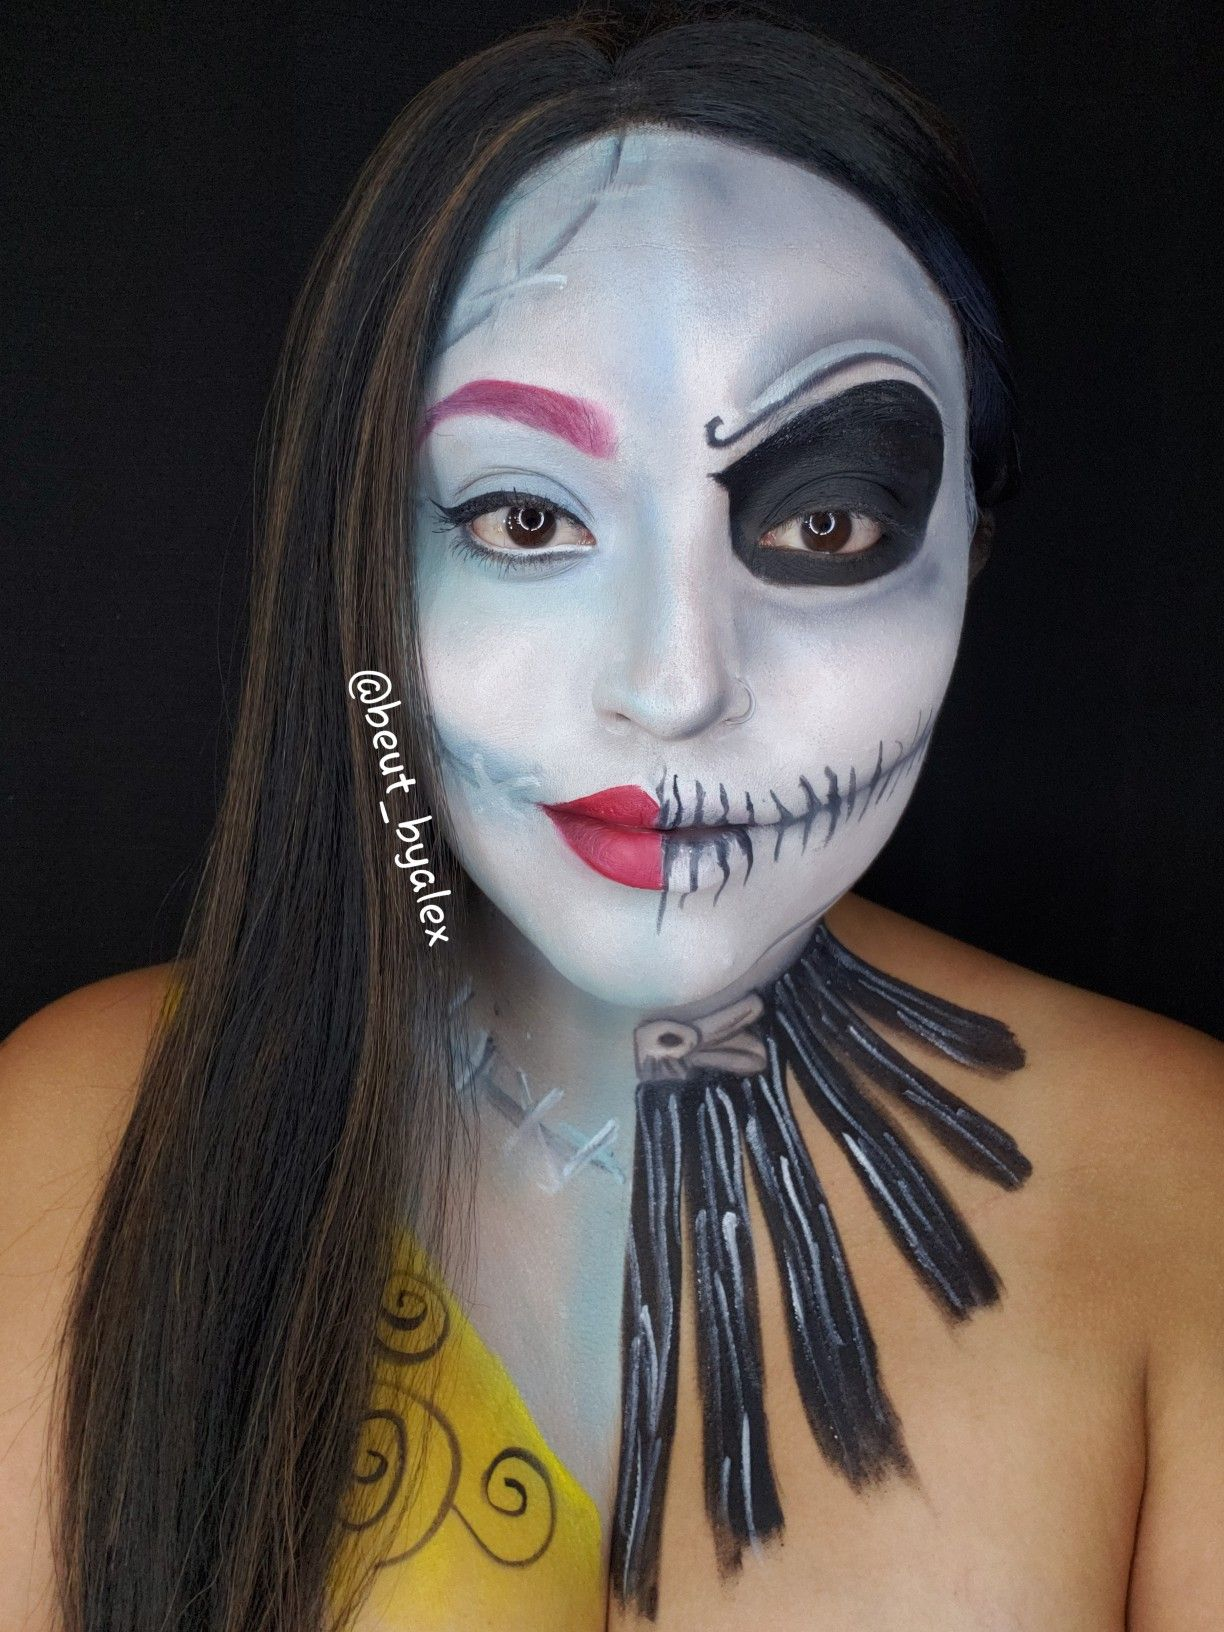 The Nightmare Before Christmas! One of my favorite